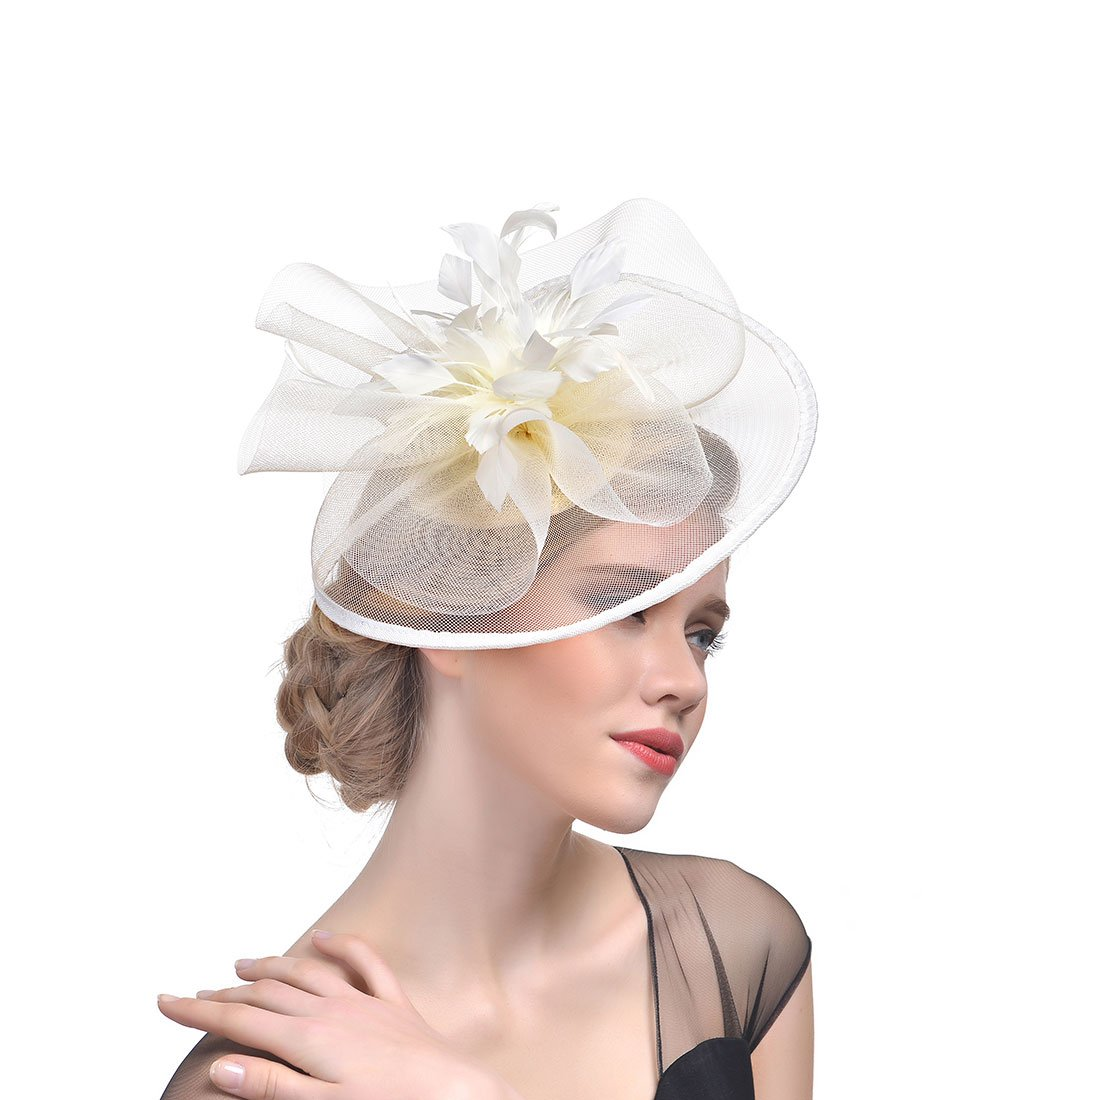 Sunshine girl Women Wedding Bridal Fascinator Veil Hair Ornament Headdress(Beige)